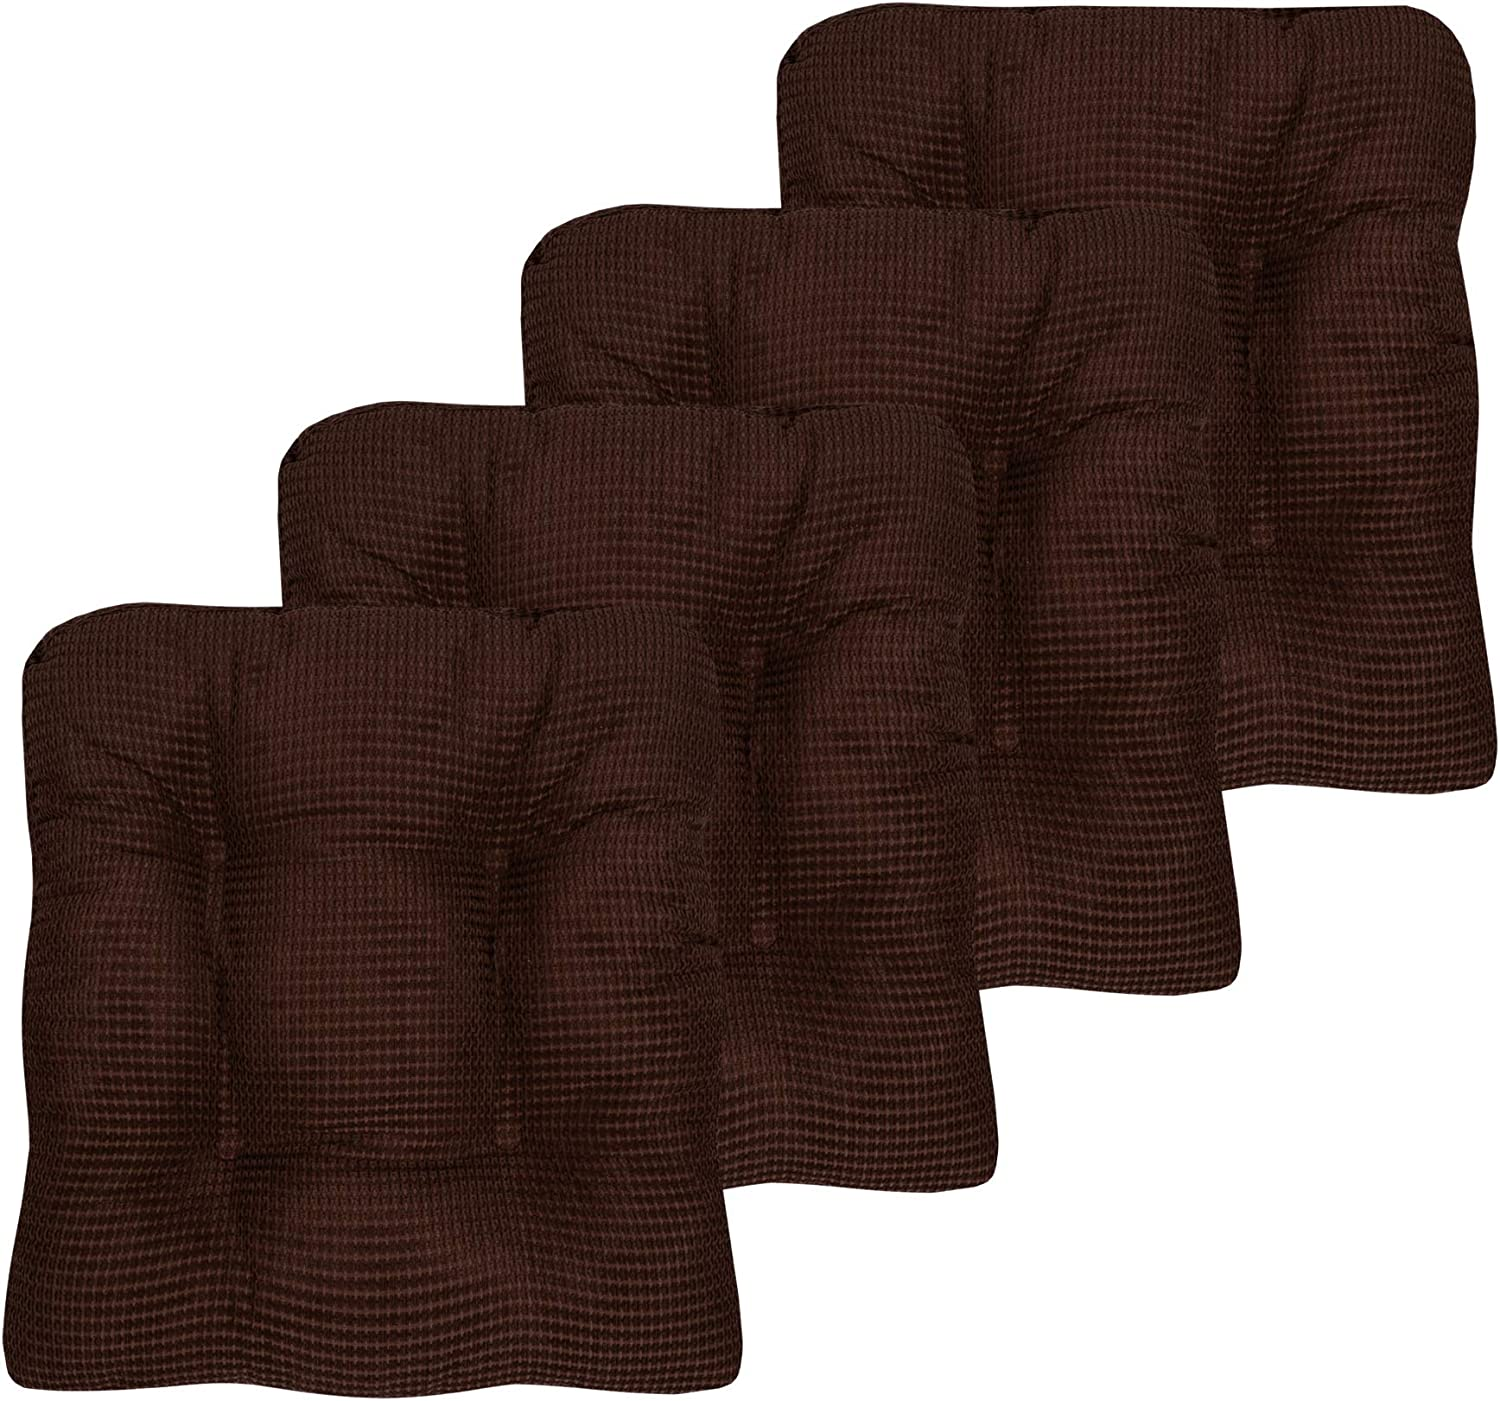 "Sweet Home Collection Chair Cushion Crushed Memory Foam Pads Premium Slip Non Skid Microdot Rubber Back Tufted 16"" x 16"" x 3.25"" Thick Seat Cover, 4 Pack, Chocolate Brown"